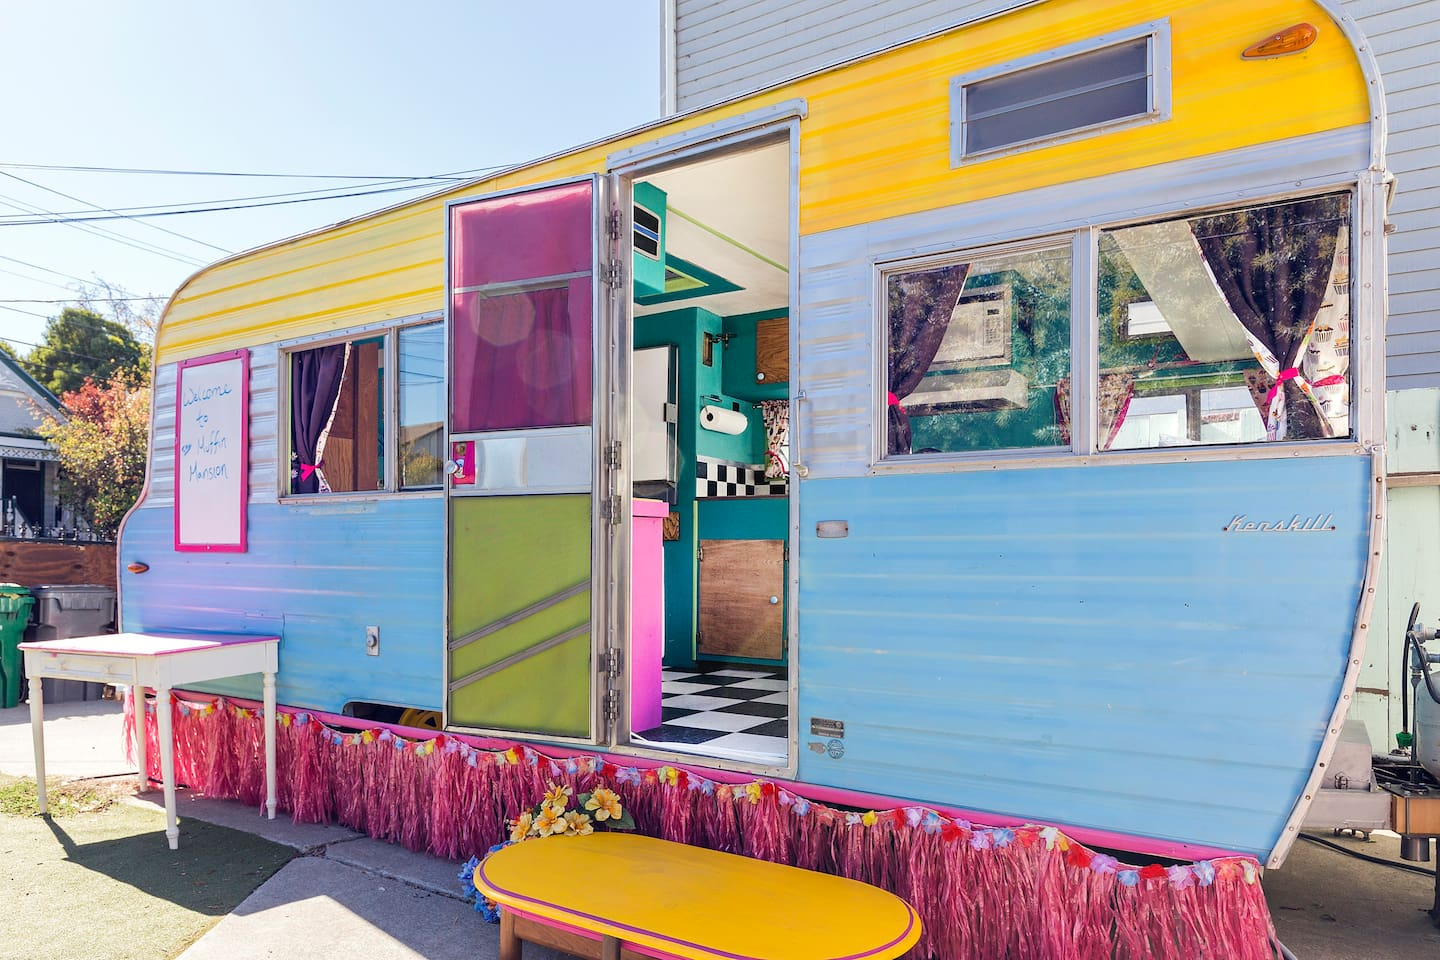 Fabulously restored vintage trailer for your urban glamping adventure!